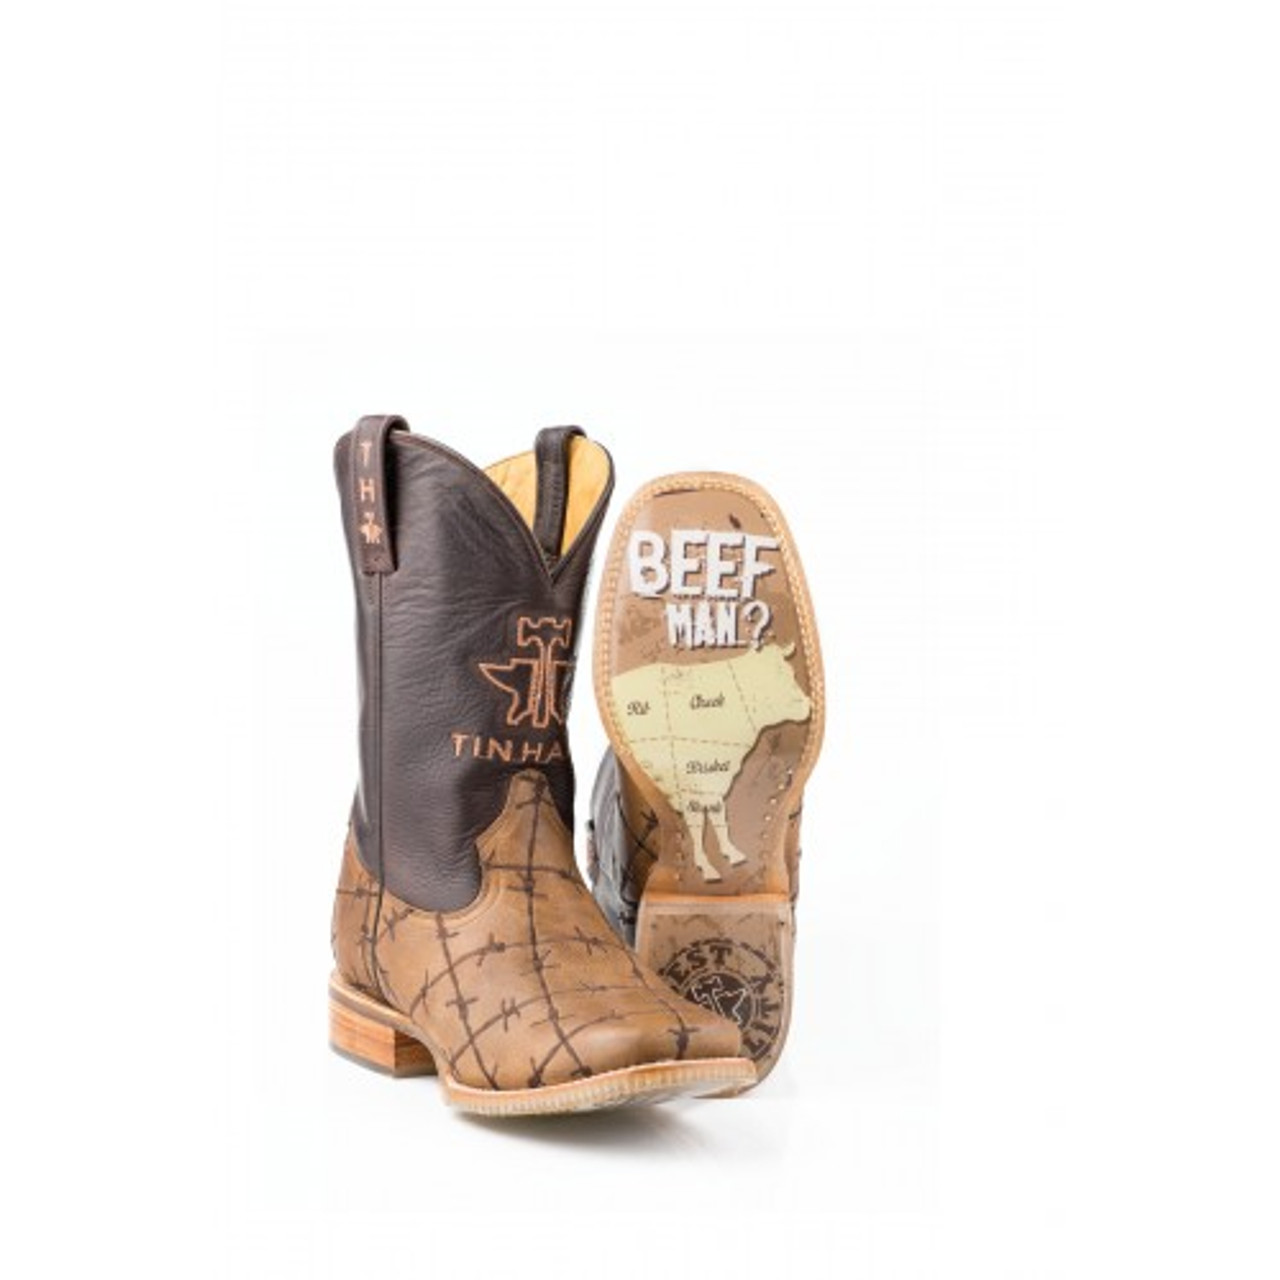 98951342fcf Tin Haul Men's Boots - Don't Fence Me In